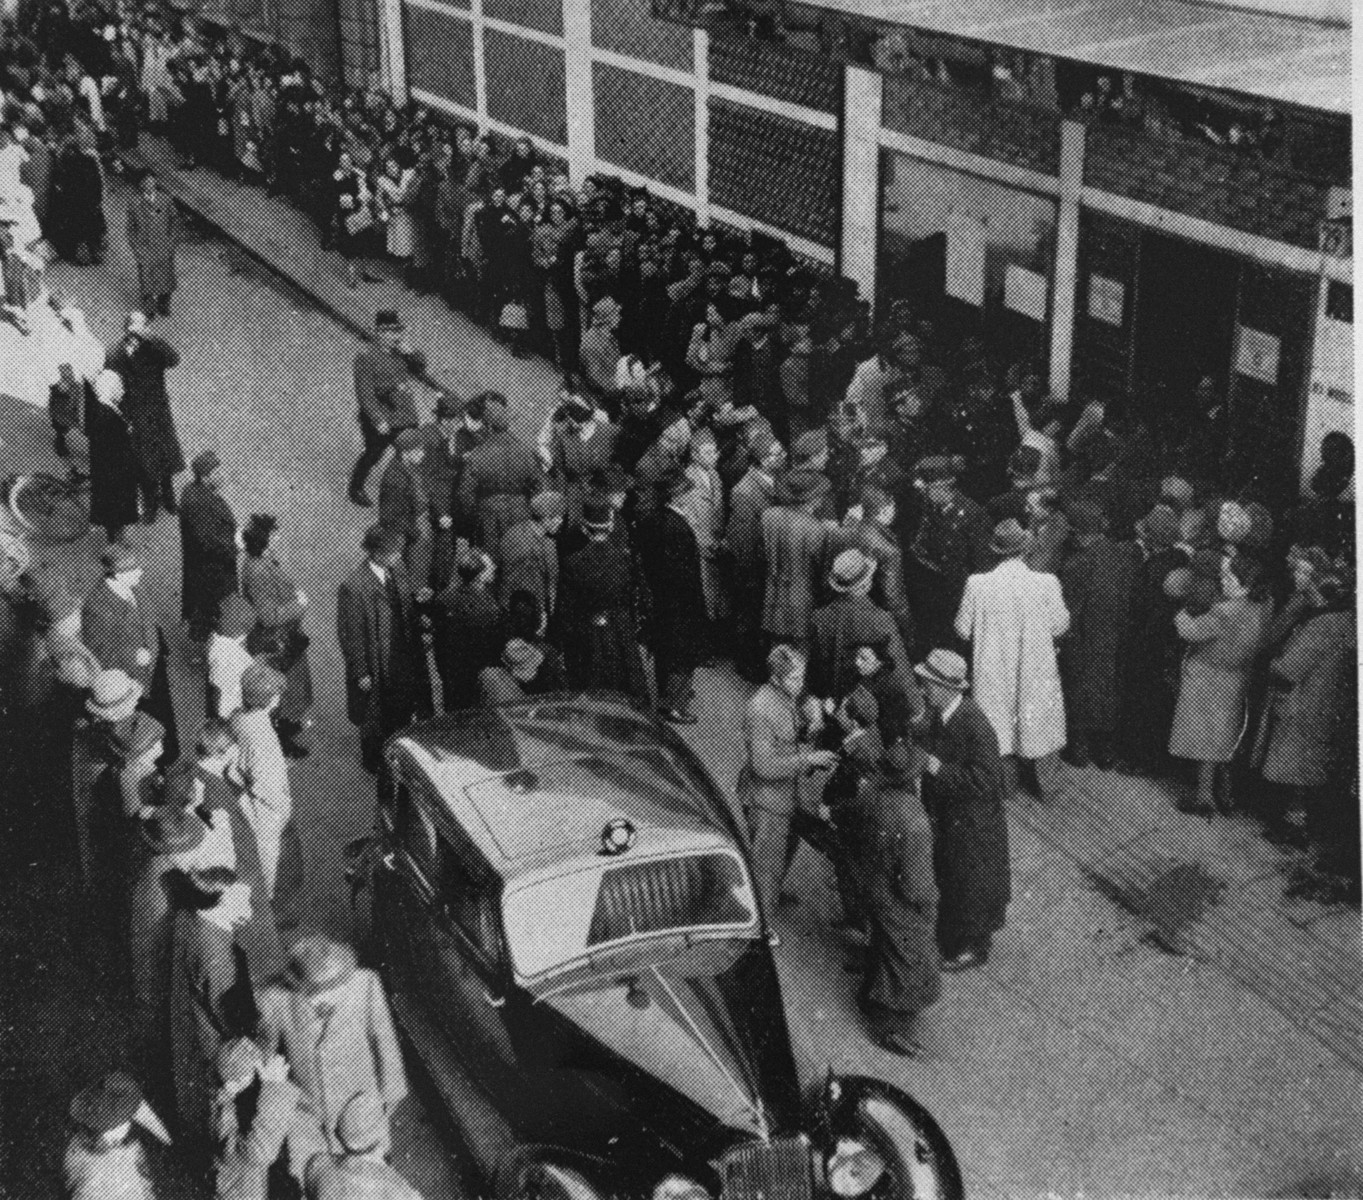 Police attempt to control the crowd of Jews, who are waiting outside a branch of the Swiss legation located in the Glass House on Vadasz Street hoping to obtain Schutzbriefe that would protect them from deportation.  In the foreground is the car used by Vice Consul Carl Lutz.